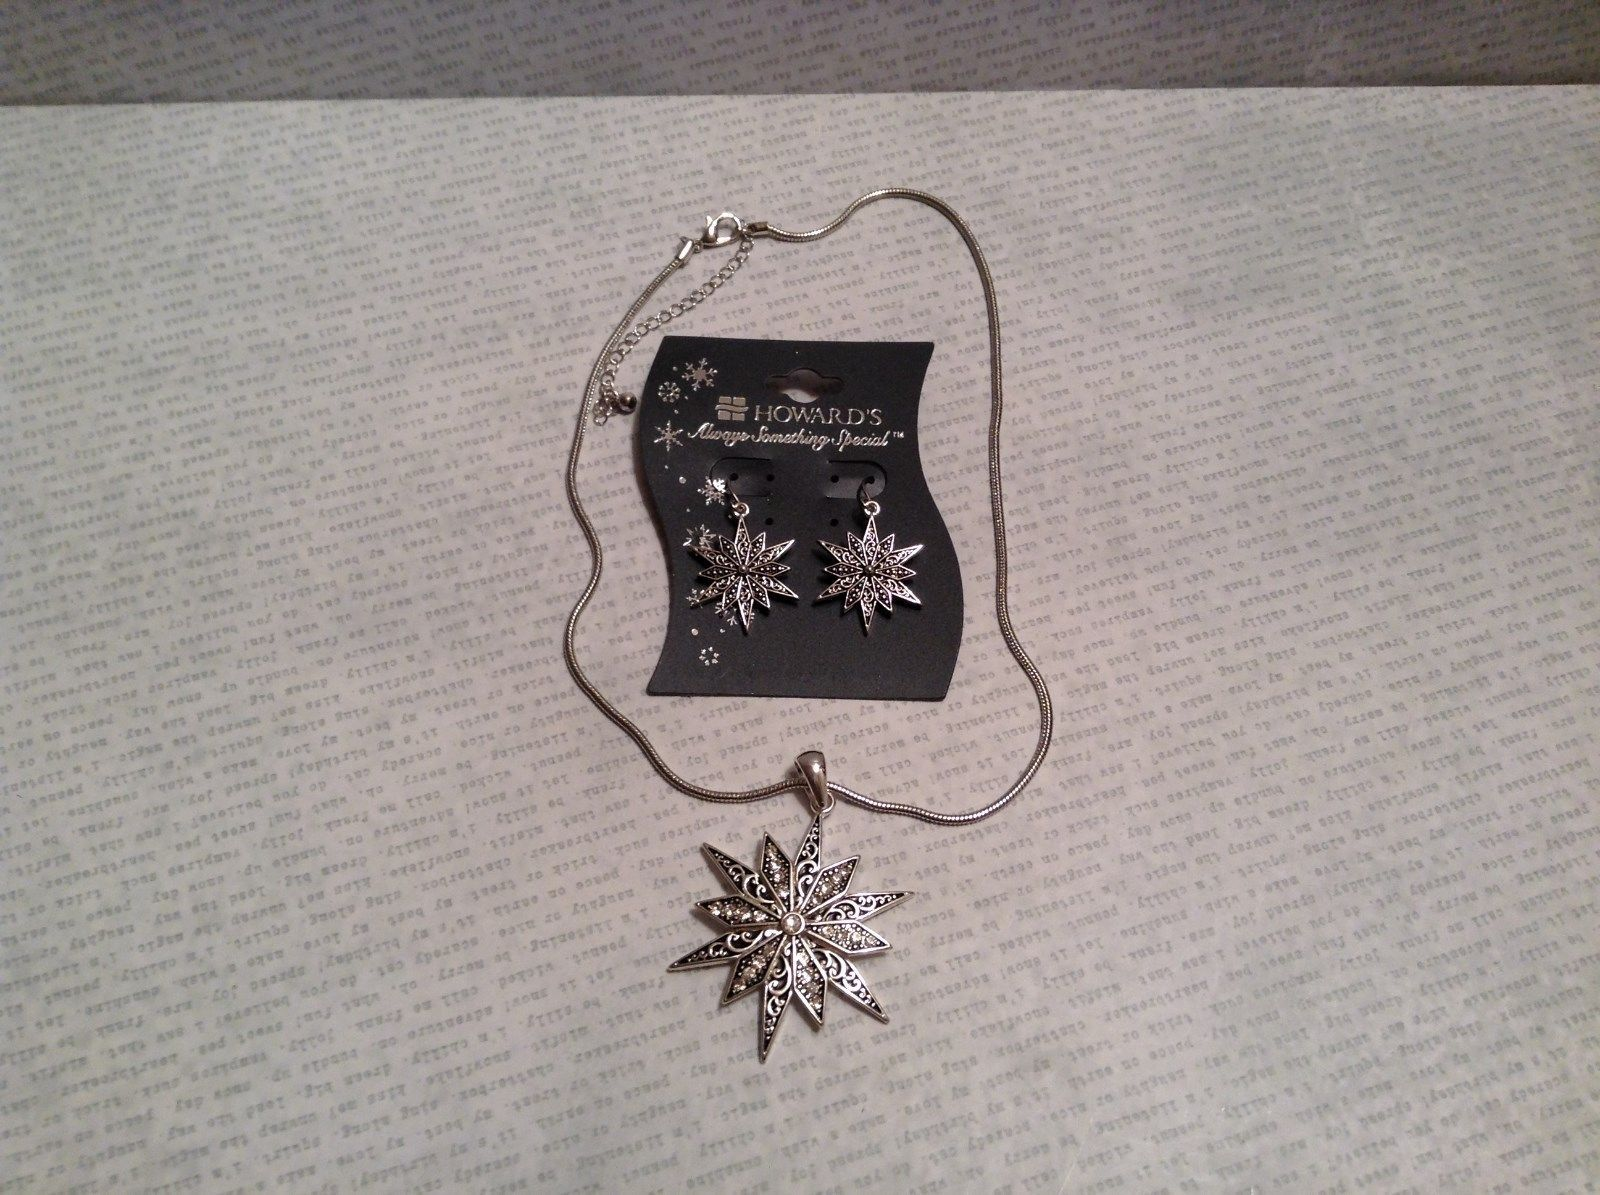 Pendant Necklace and Earring Set Snowflake Shaped Nickel Free Metal Snake Chain